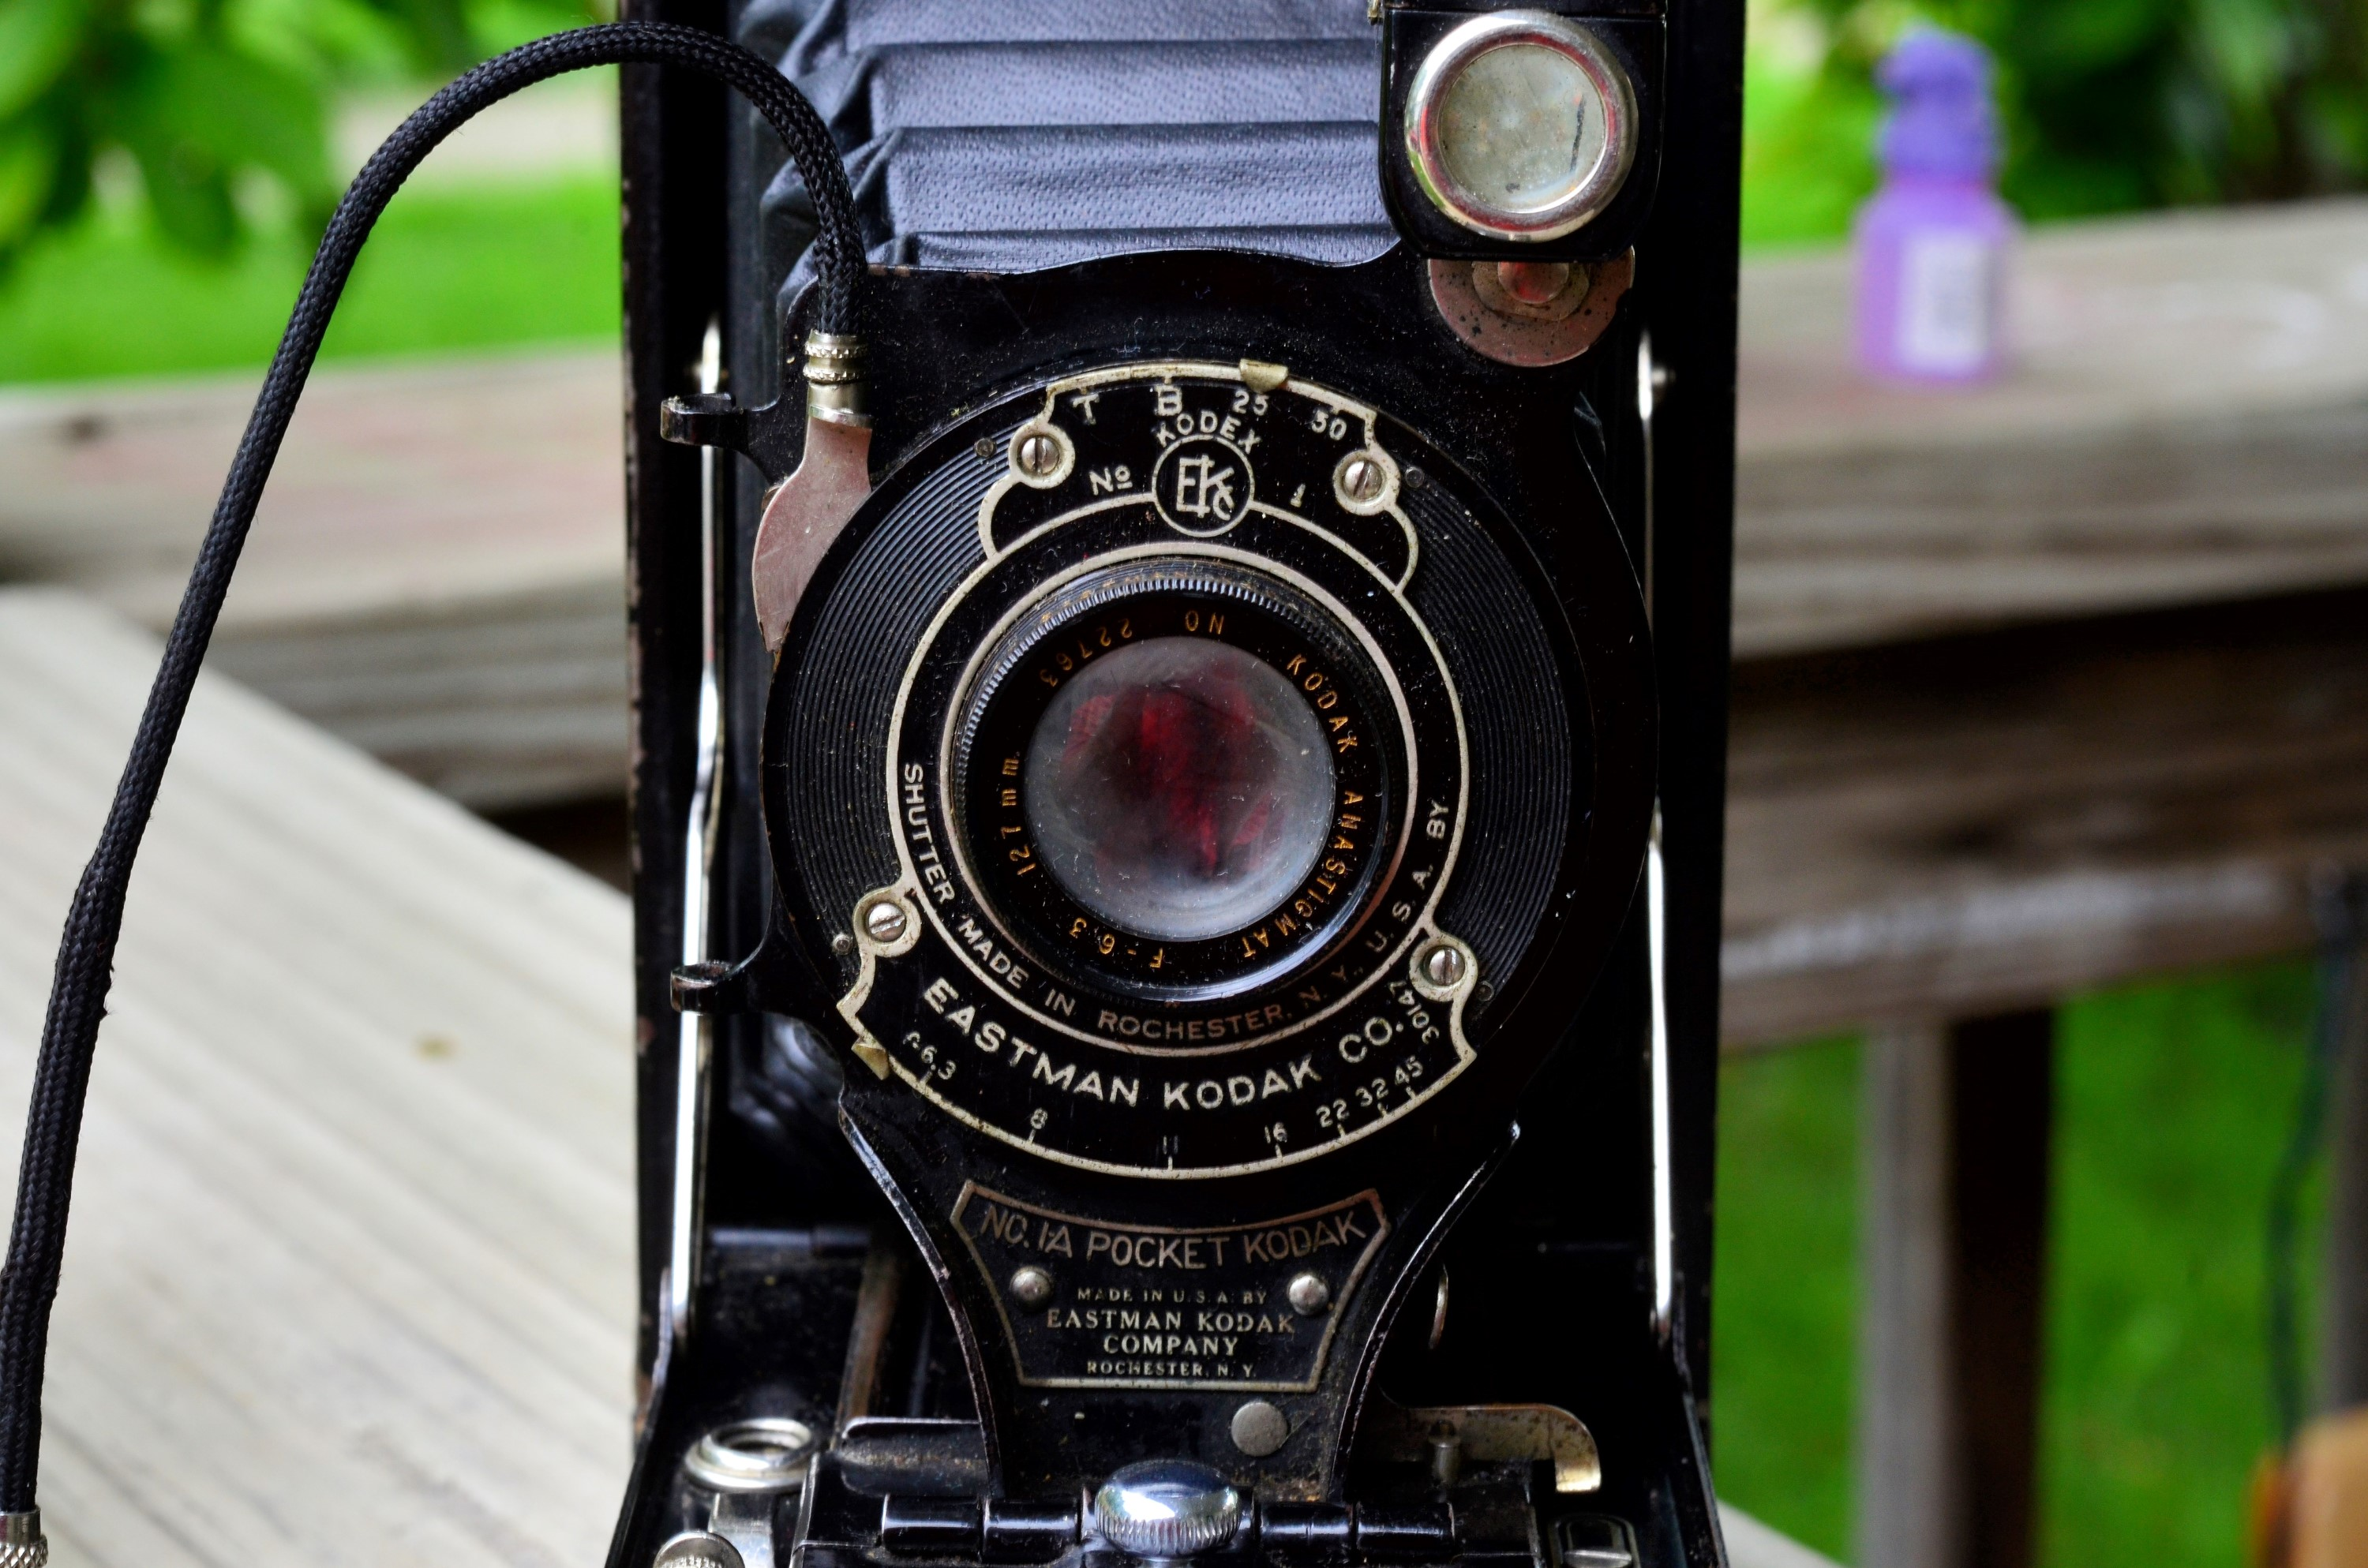 I Bought an 85 Year Old Camera